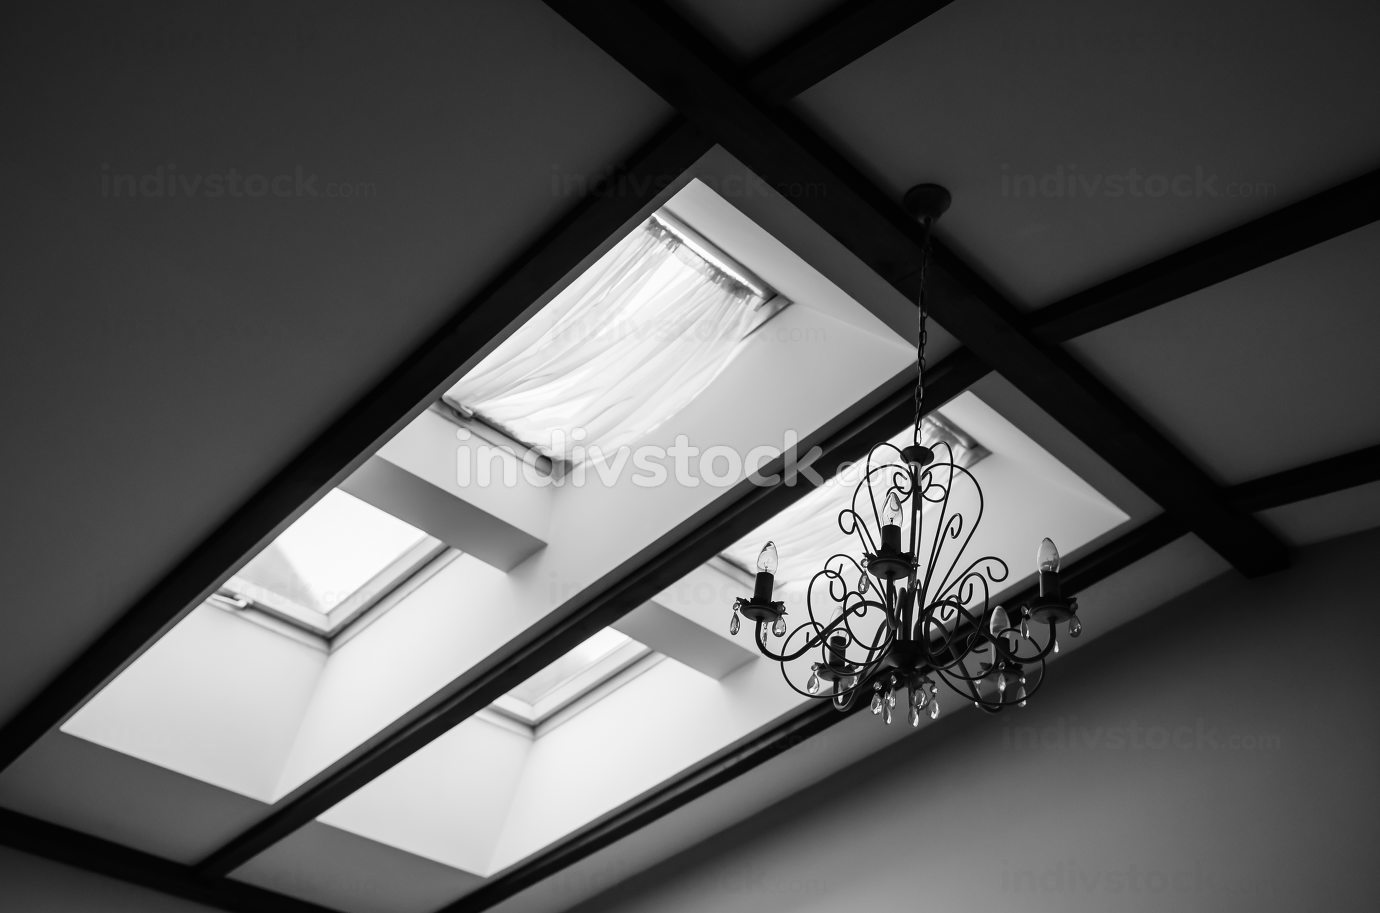 skylights in the roof of the house